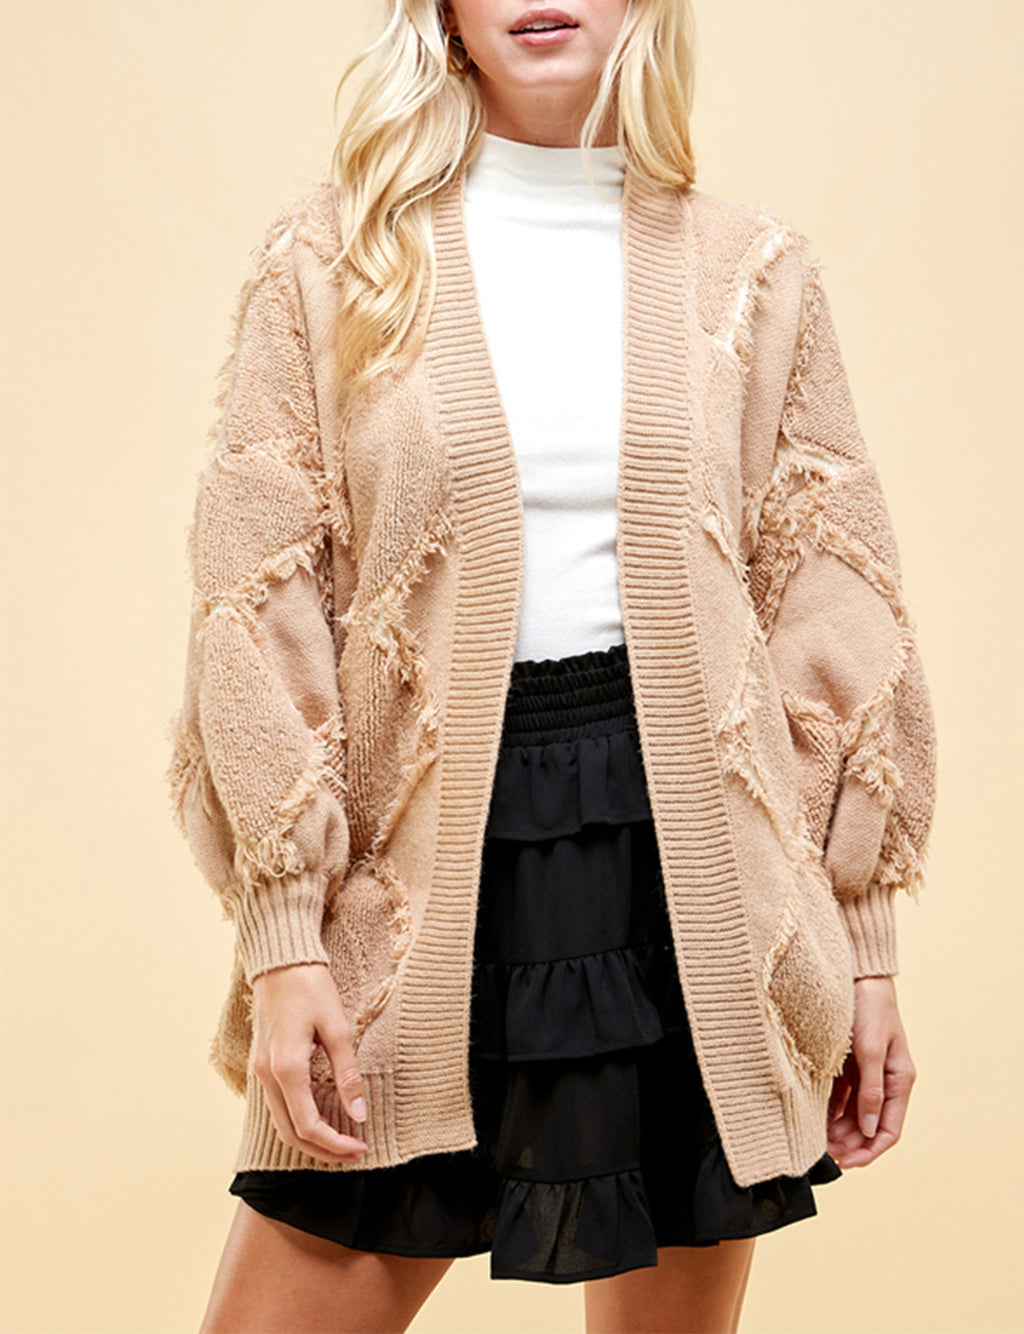 Diamond Textured Open Cardigan in Khaki/Ivory